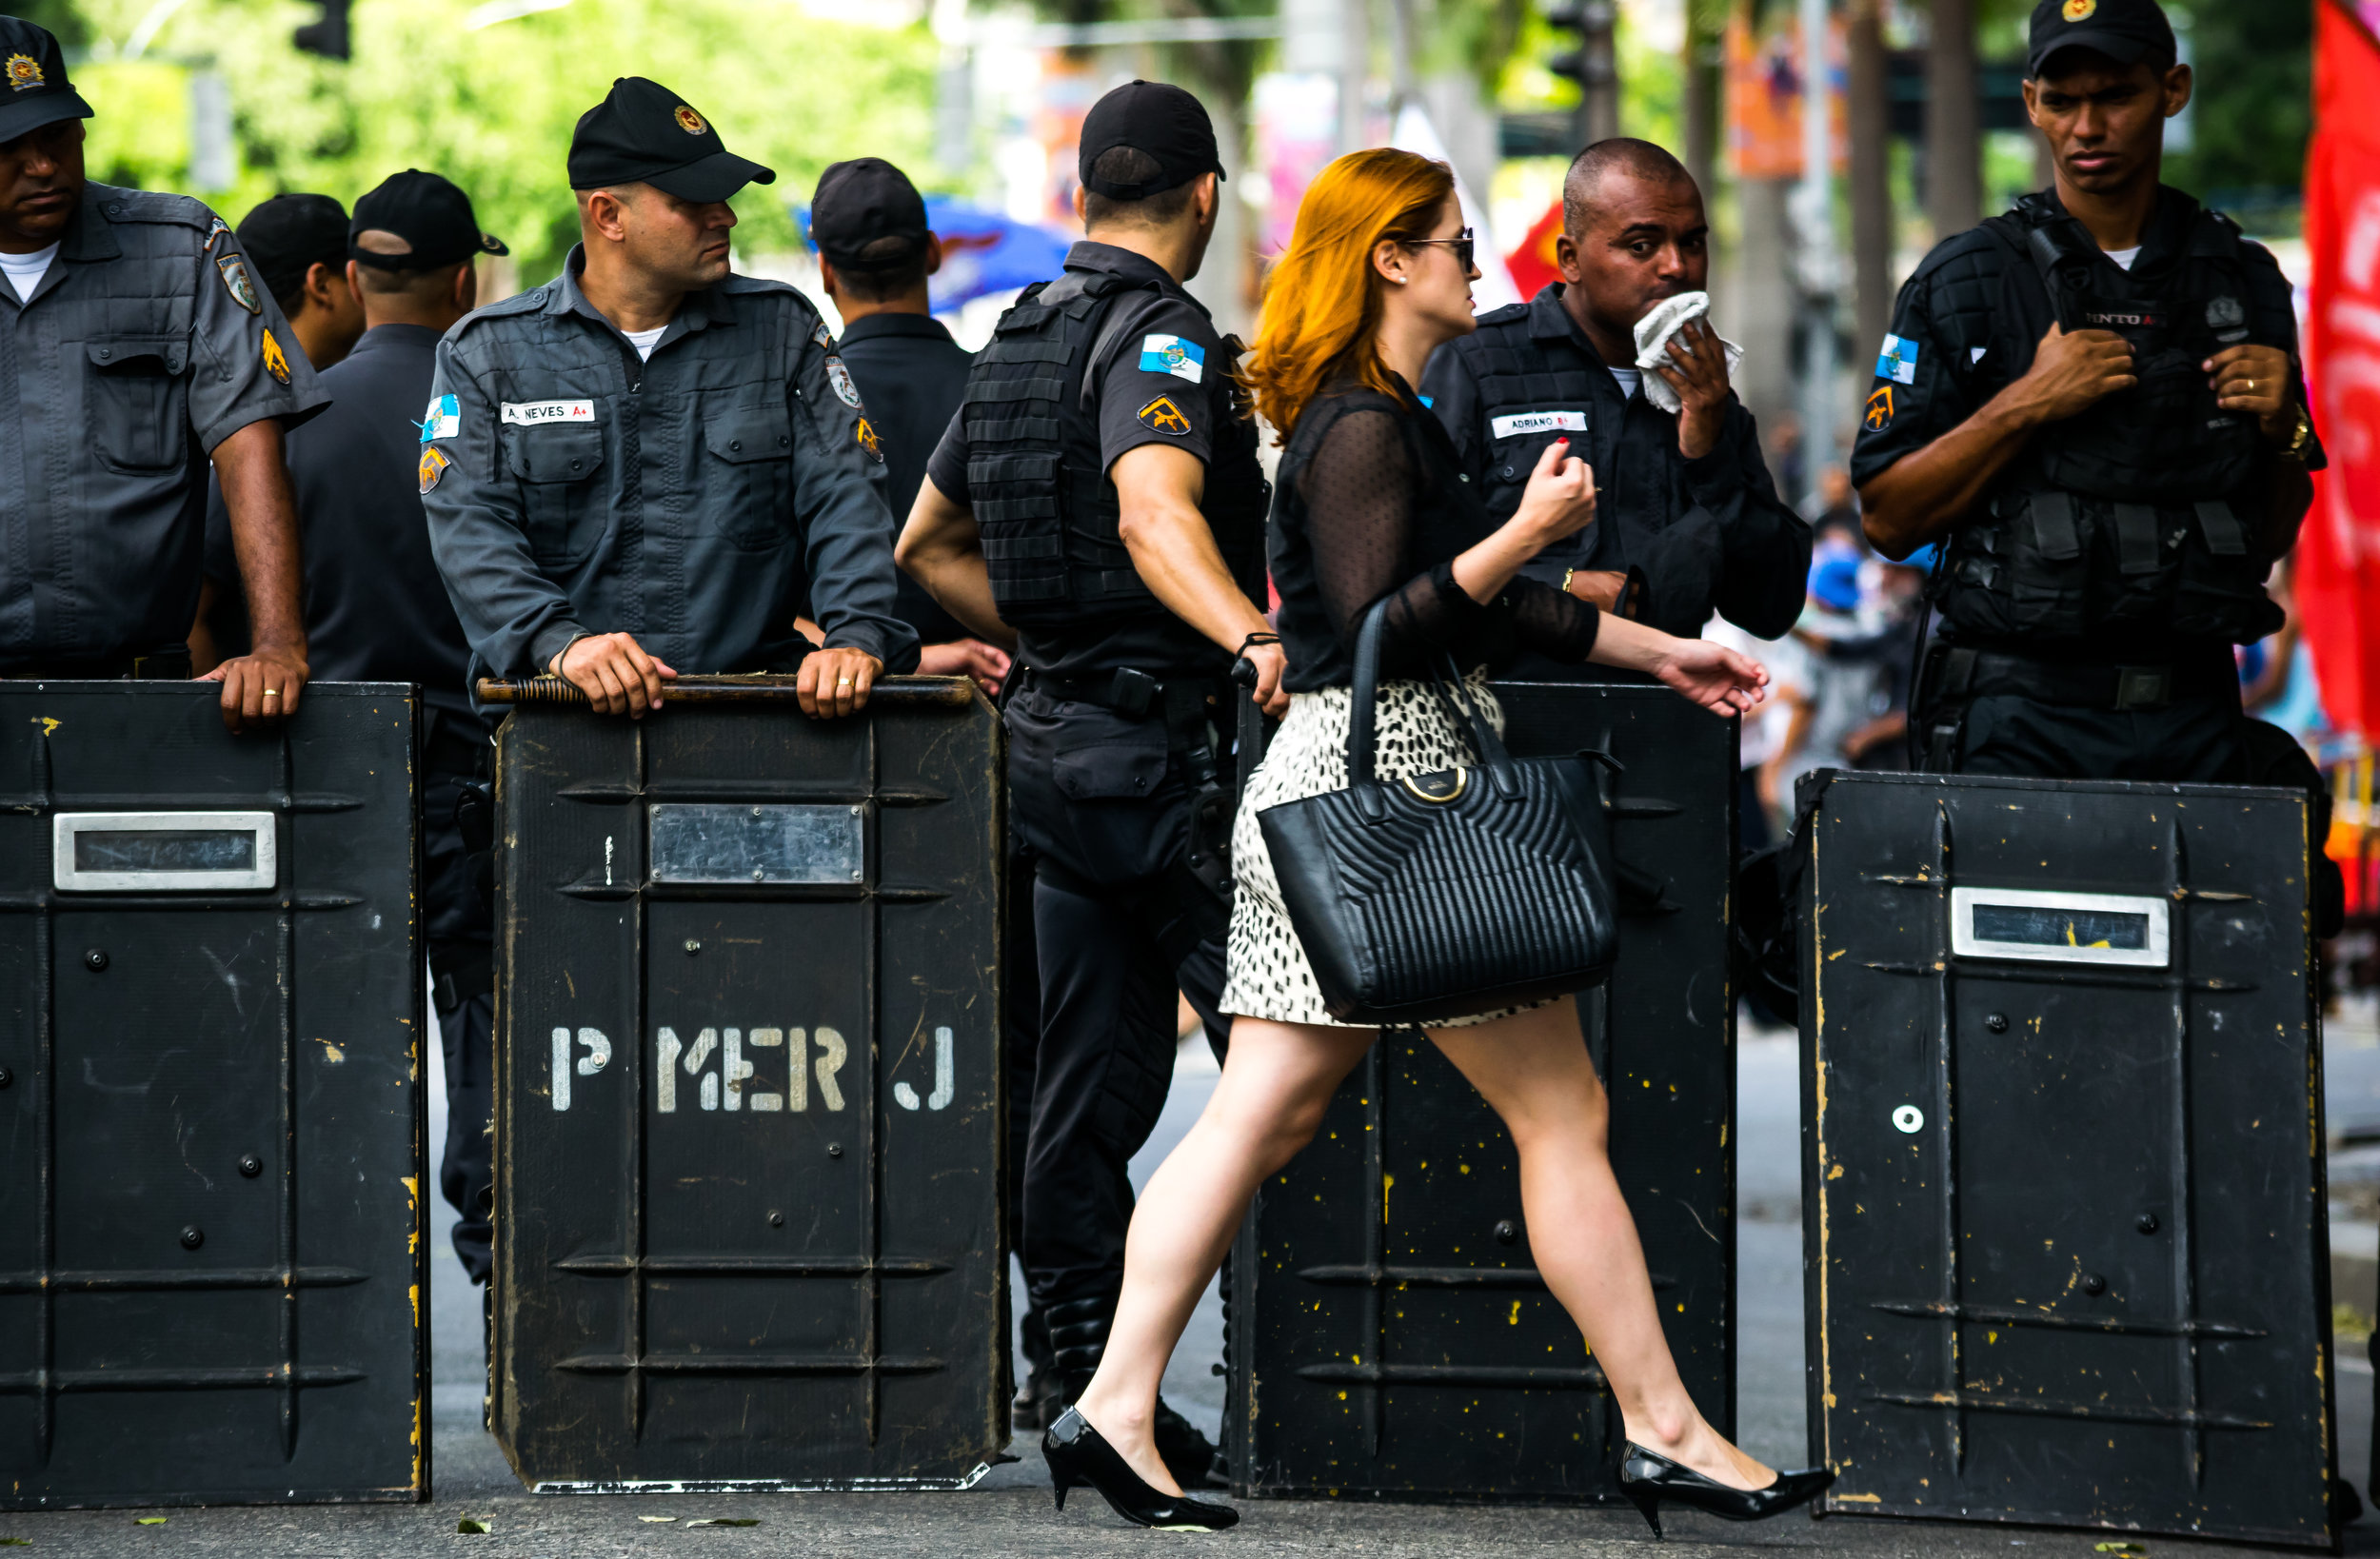 A woman walks past a police line in downtown Rio De Janeiro. For many the protests have become such a regular occurrence that they are no more than an inconvenience or part of the background.